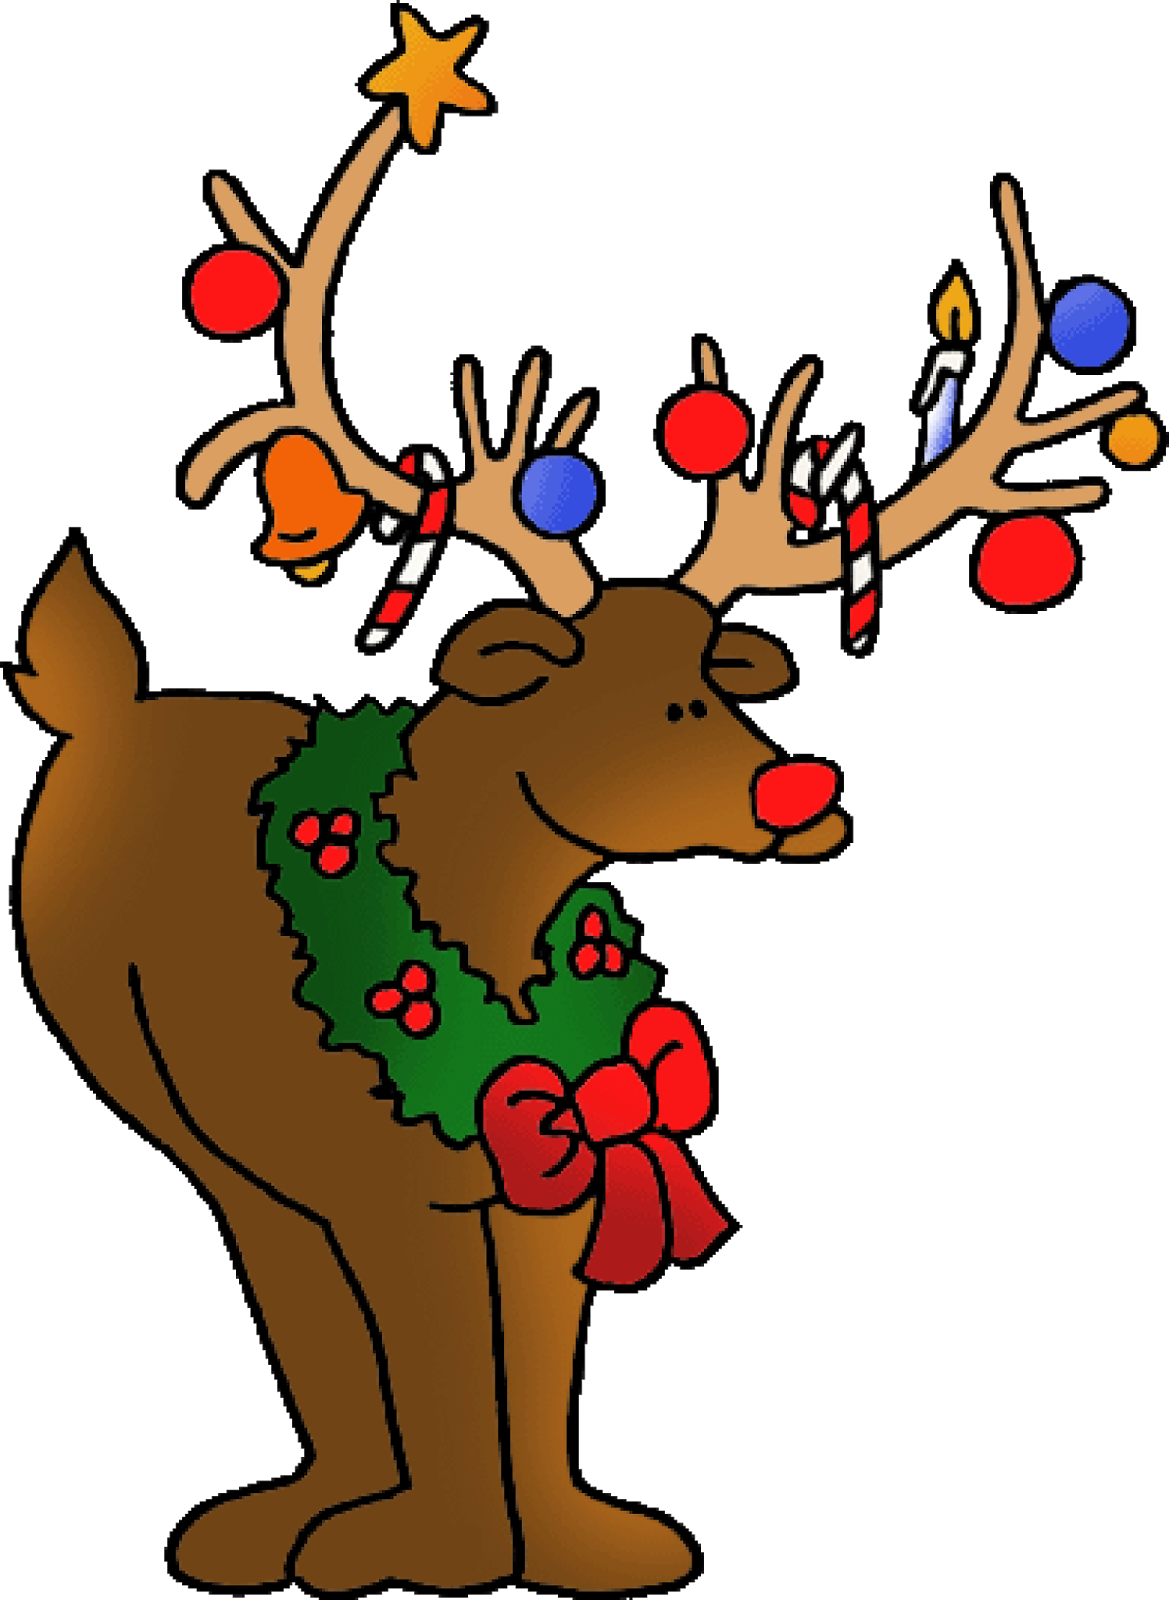 High definition for hd. Deer clipart merry christmas